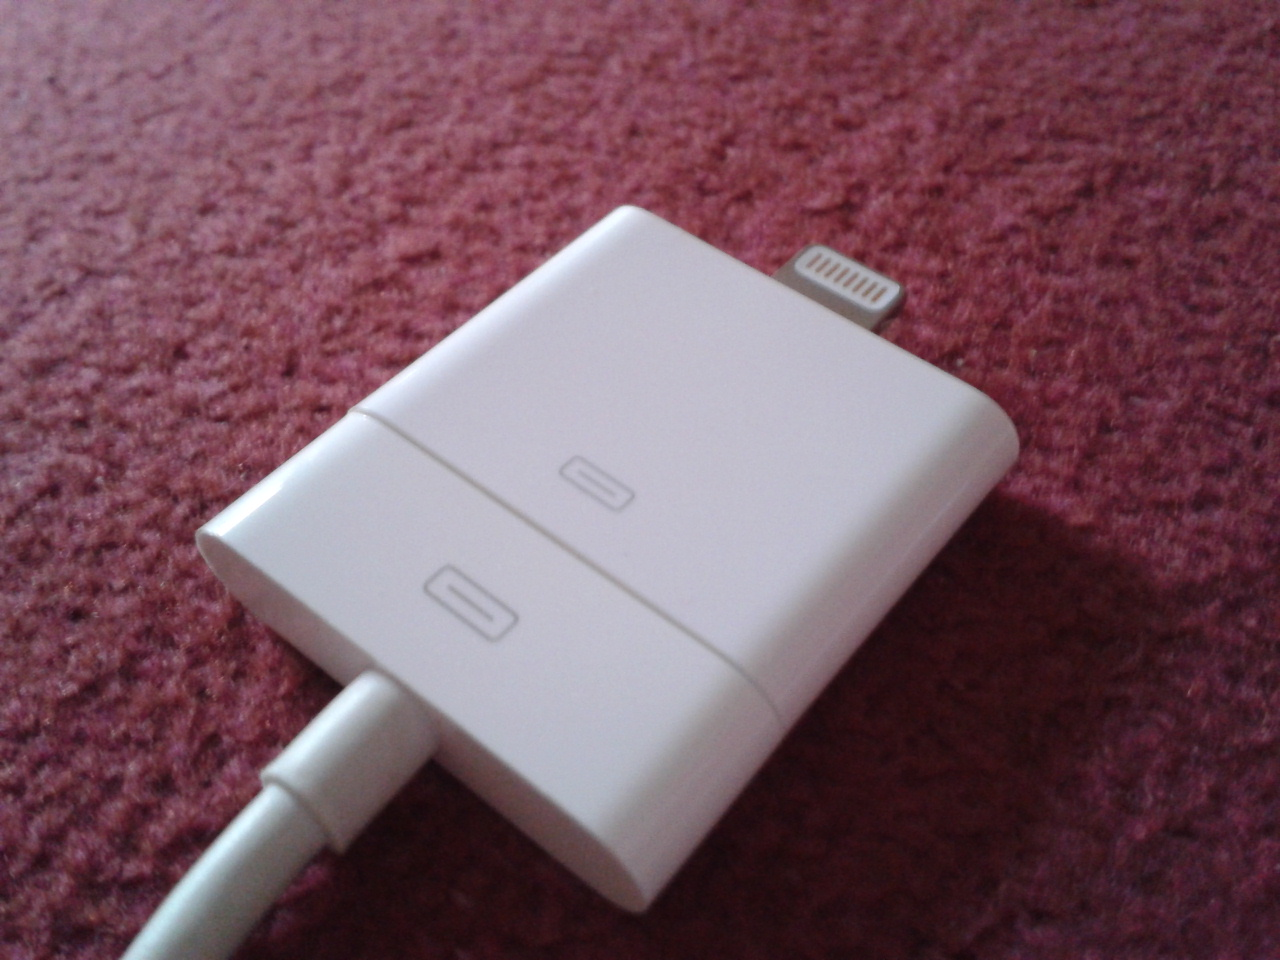 Apple Lightning Adaptor on 30-pin connector